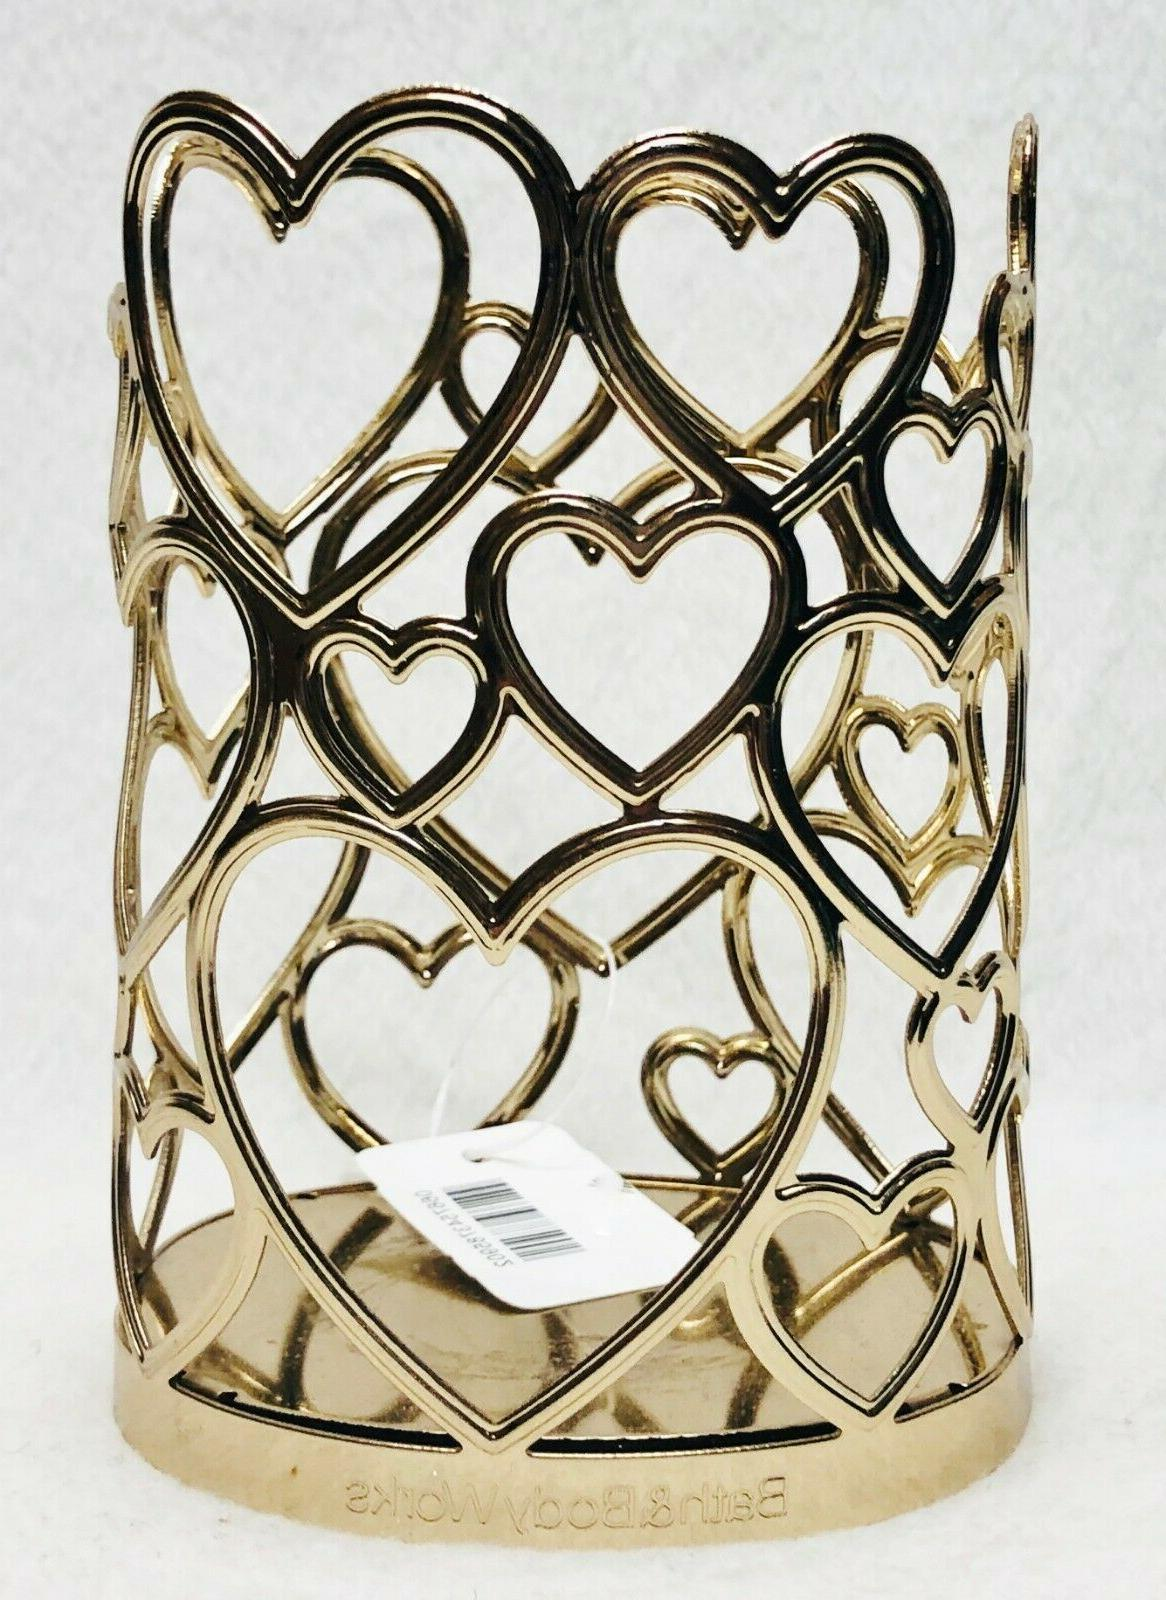 1 bath and body works gold hearts